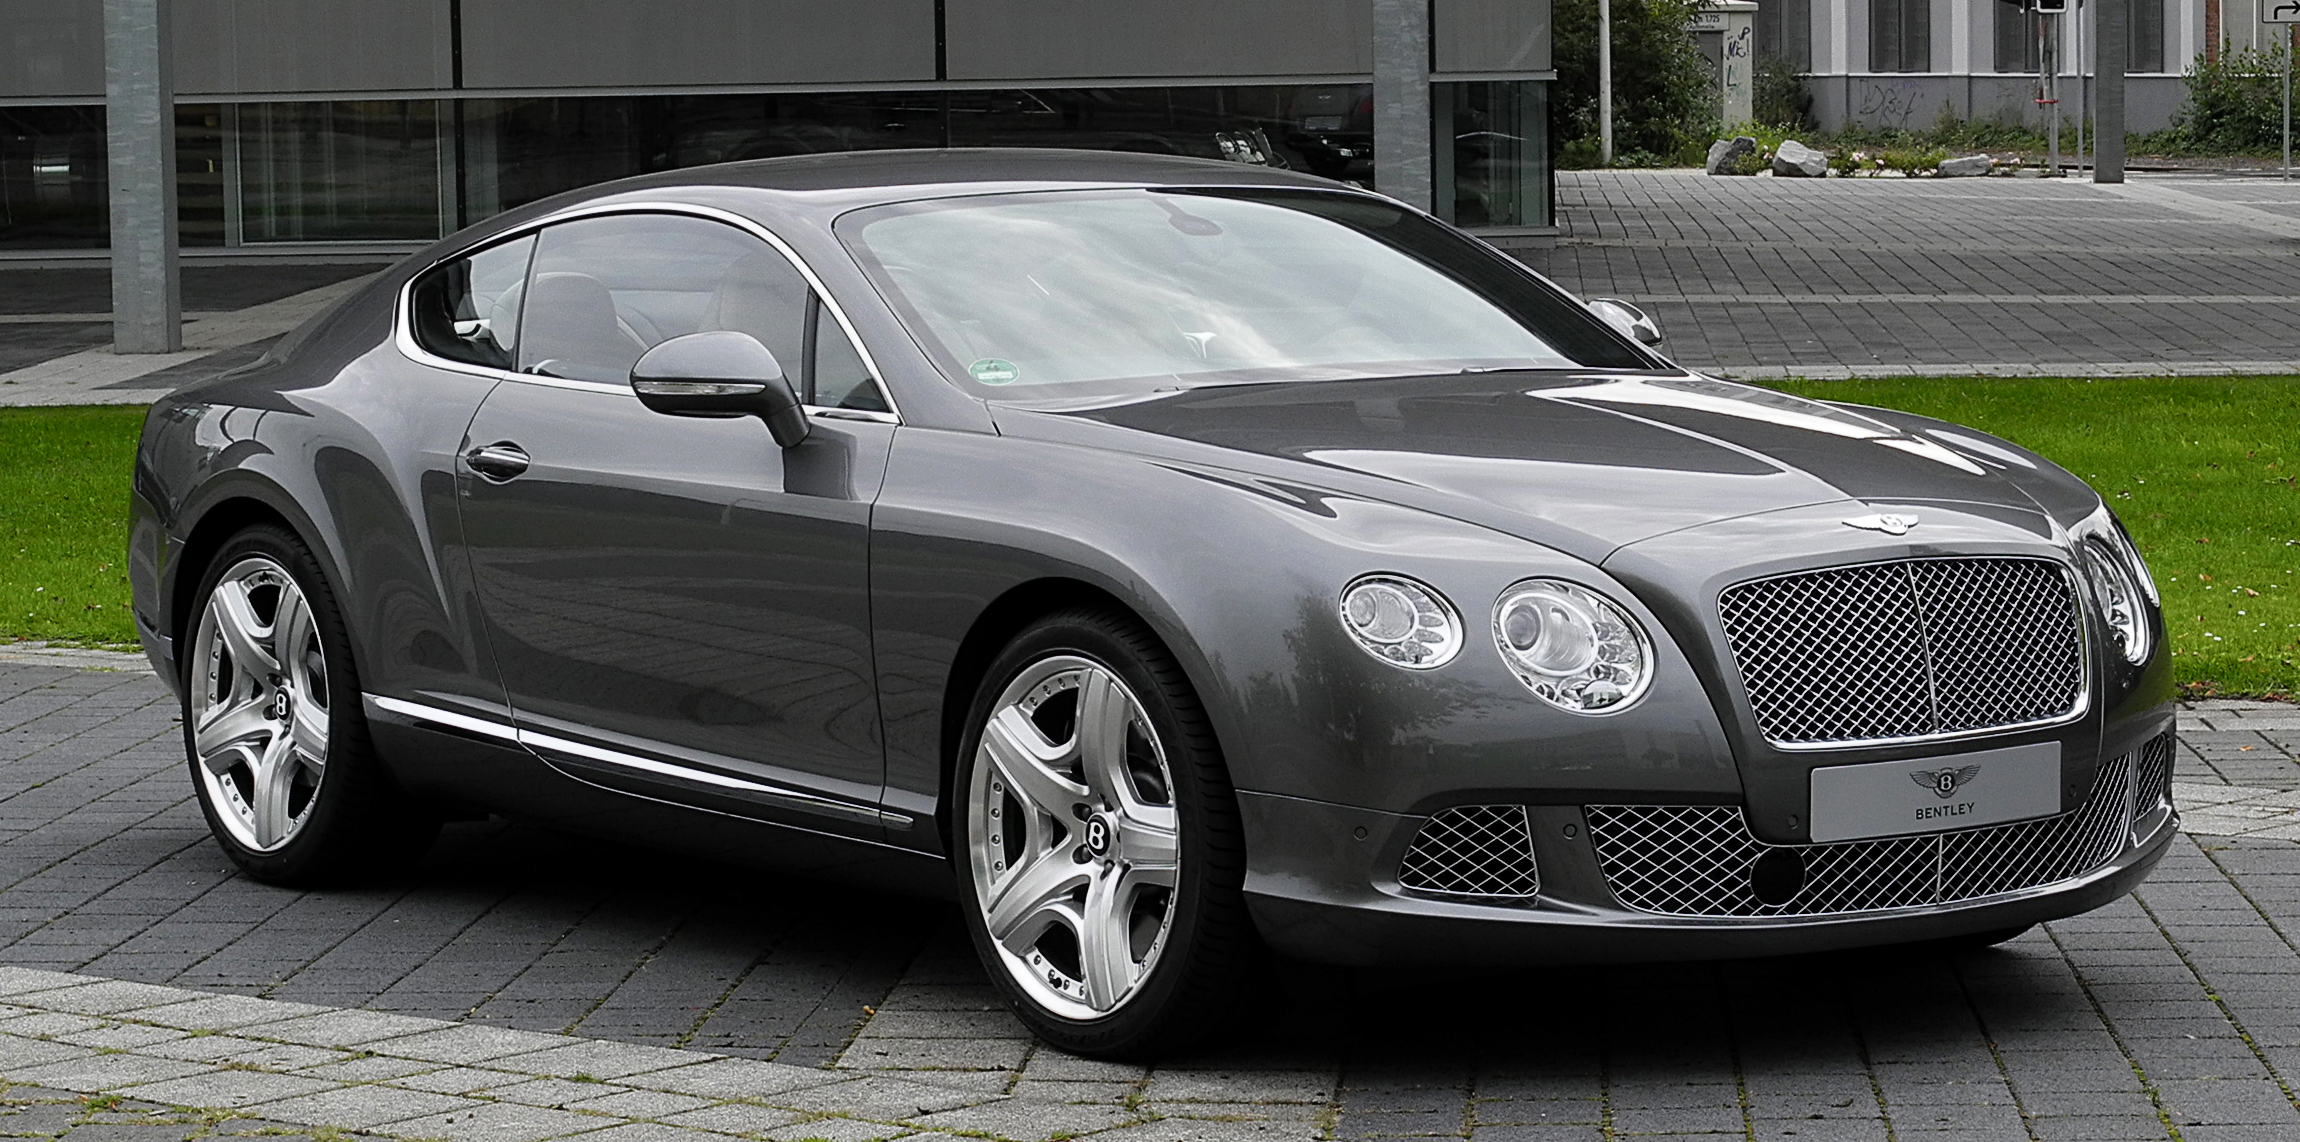 bentley images #1